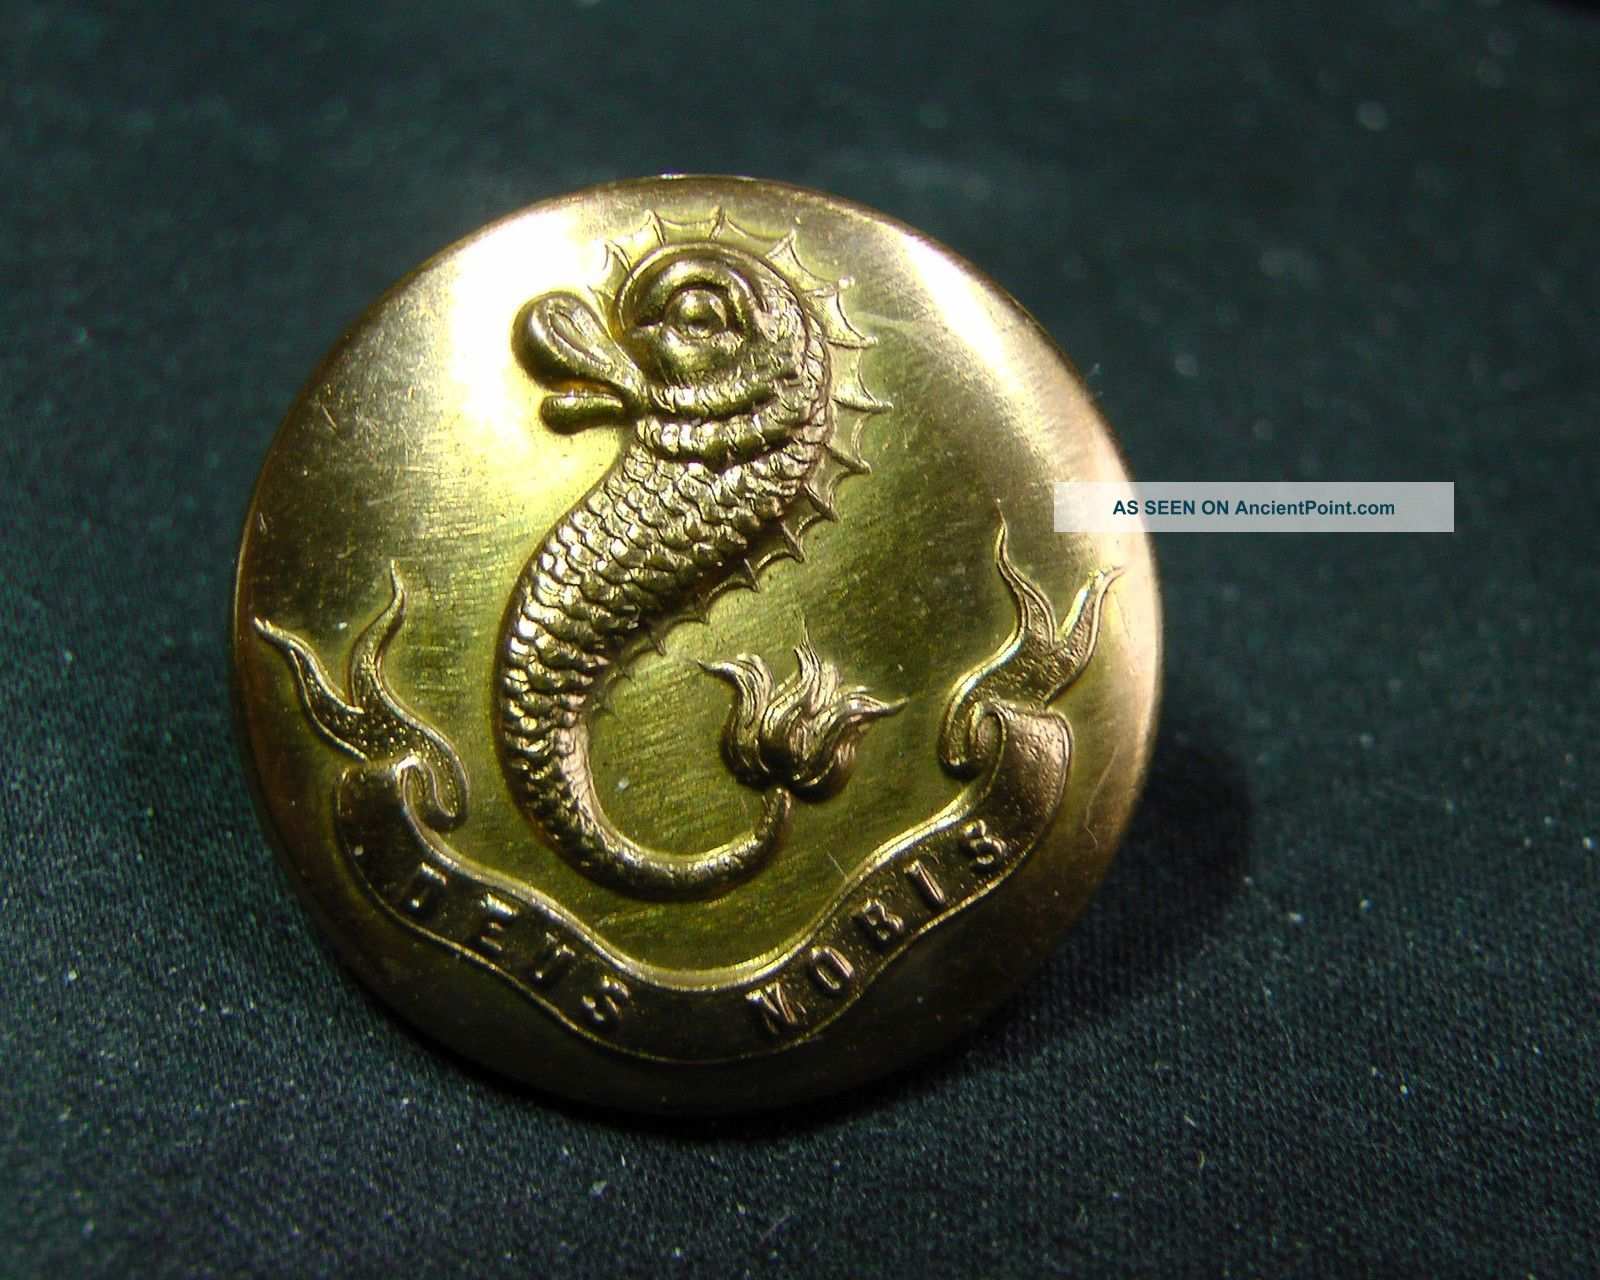 Mystery Button 3 Livery? Dolphin W Motto Bowe & Seligman Ny Circa 1900 Buttons photo